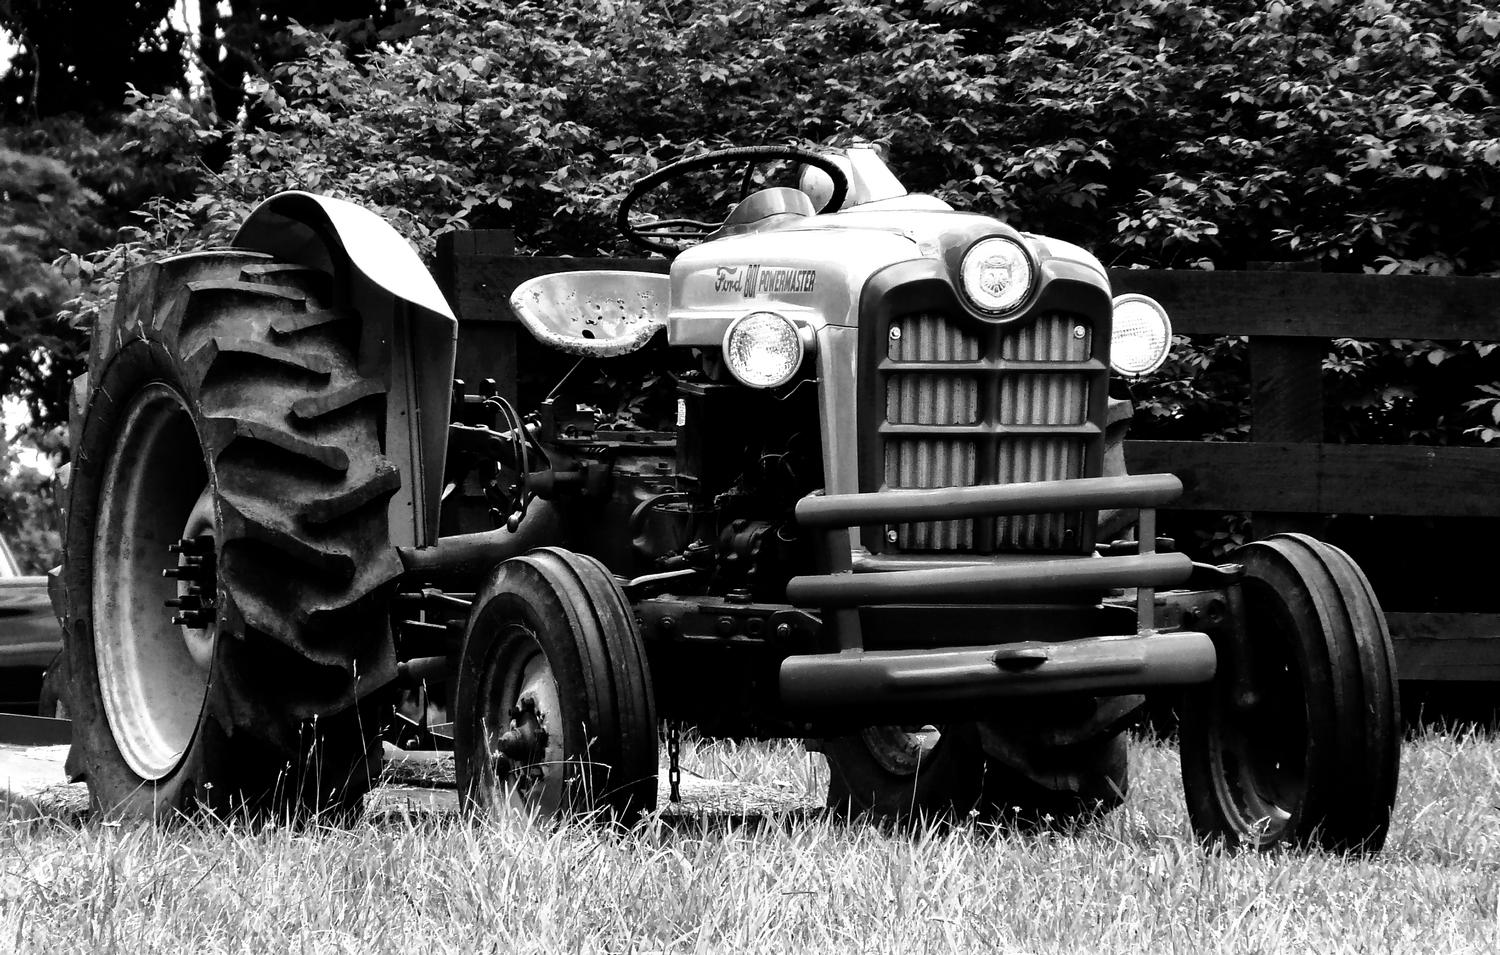 Old Ford tractor - Here's the tractor in dynamic black and white - Panasonic DMC-FZ18 - Tony Karp, design, art, photography, techno-impressionist, techno-impressionism, aerial photography , drone , drones , dji , mavic pro , video , 3D printing - Books -